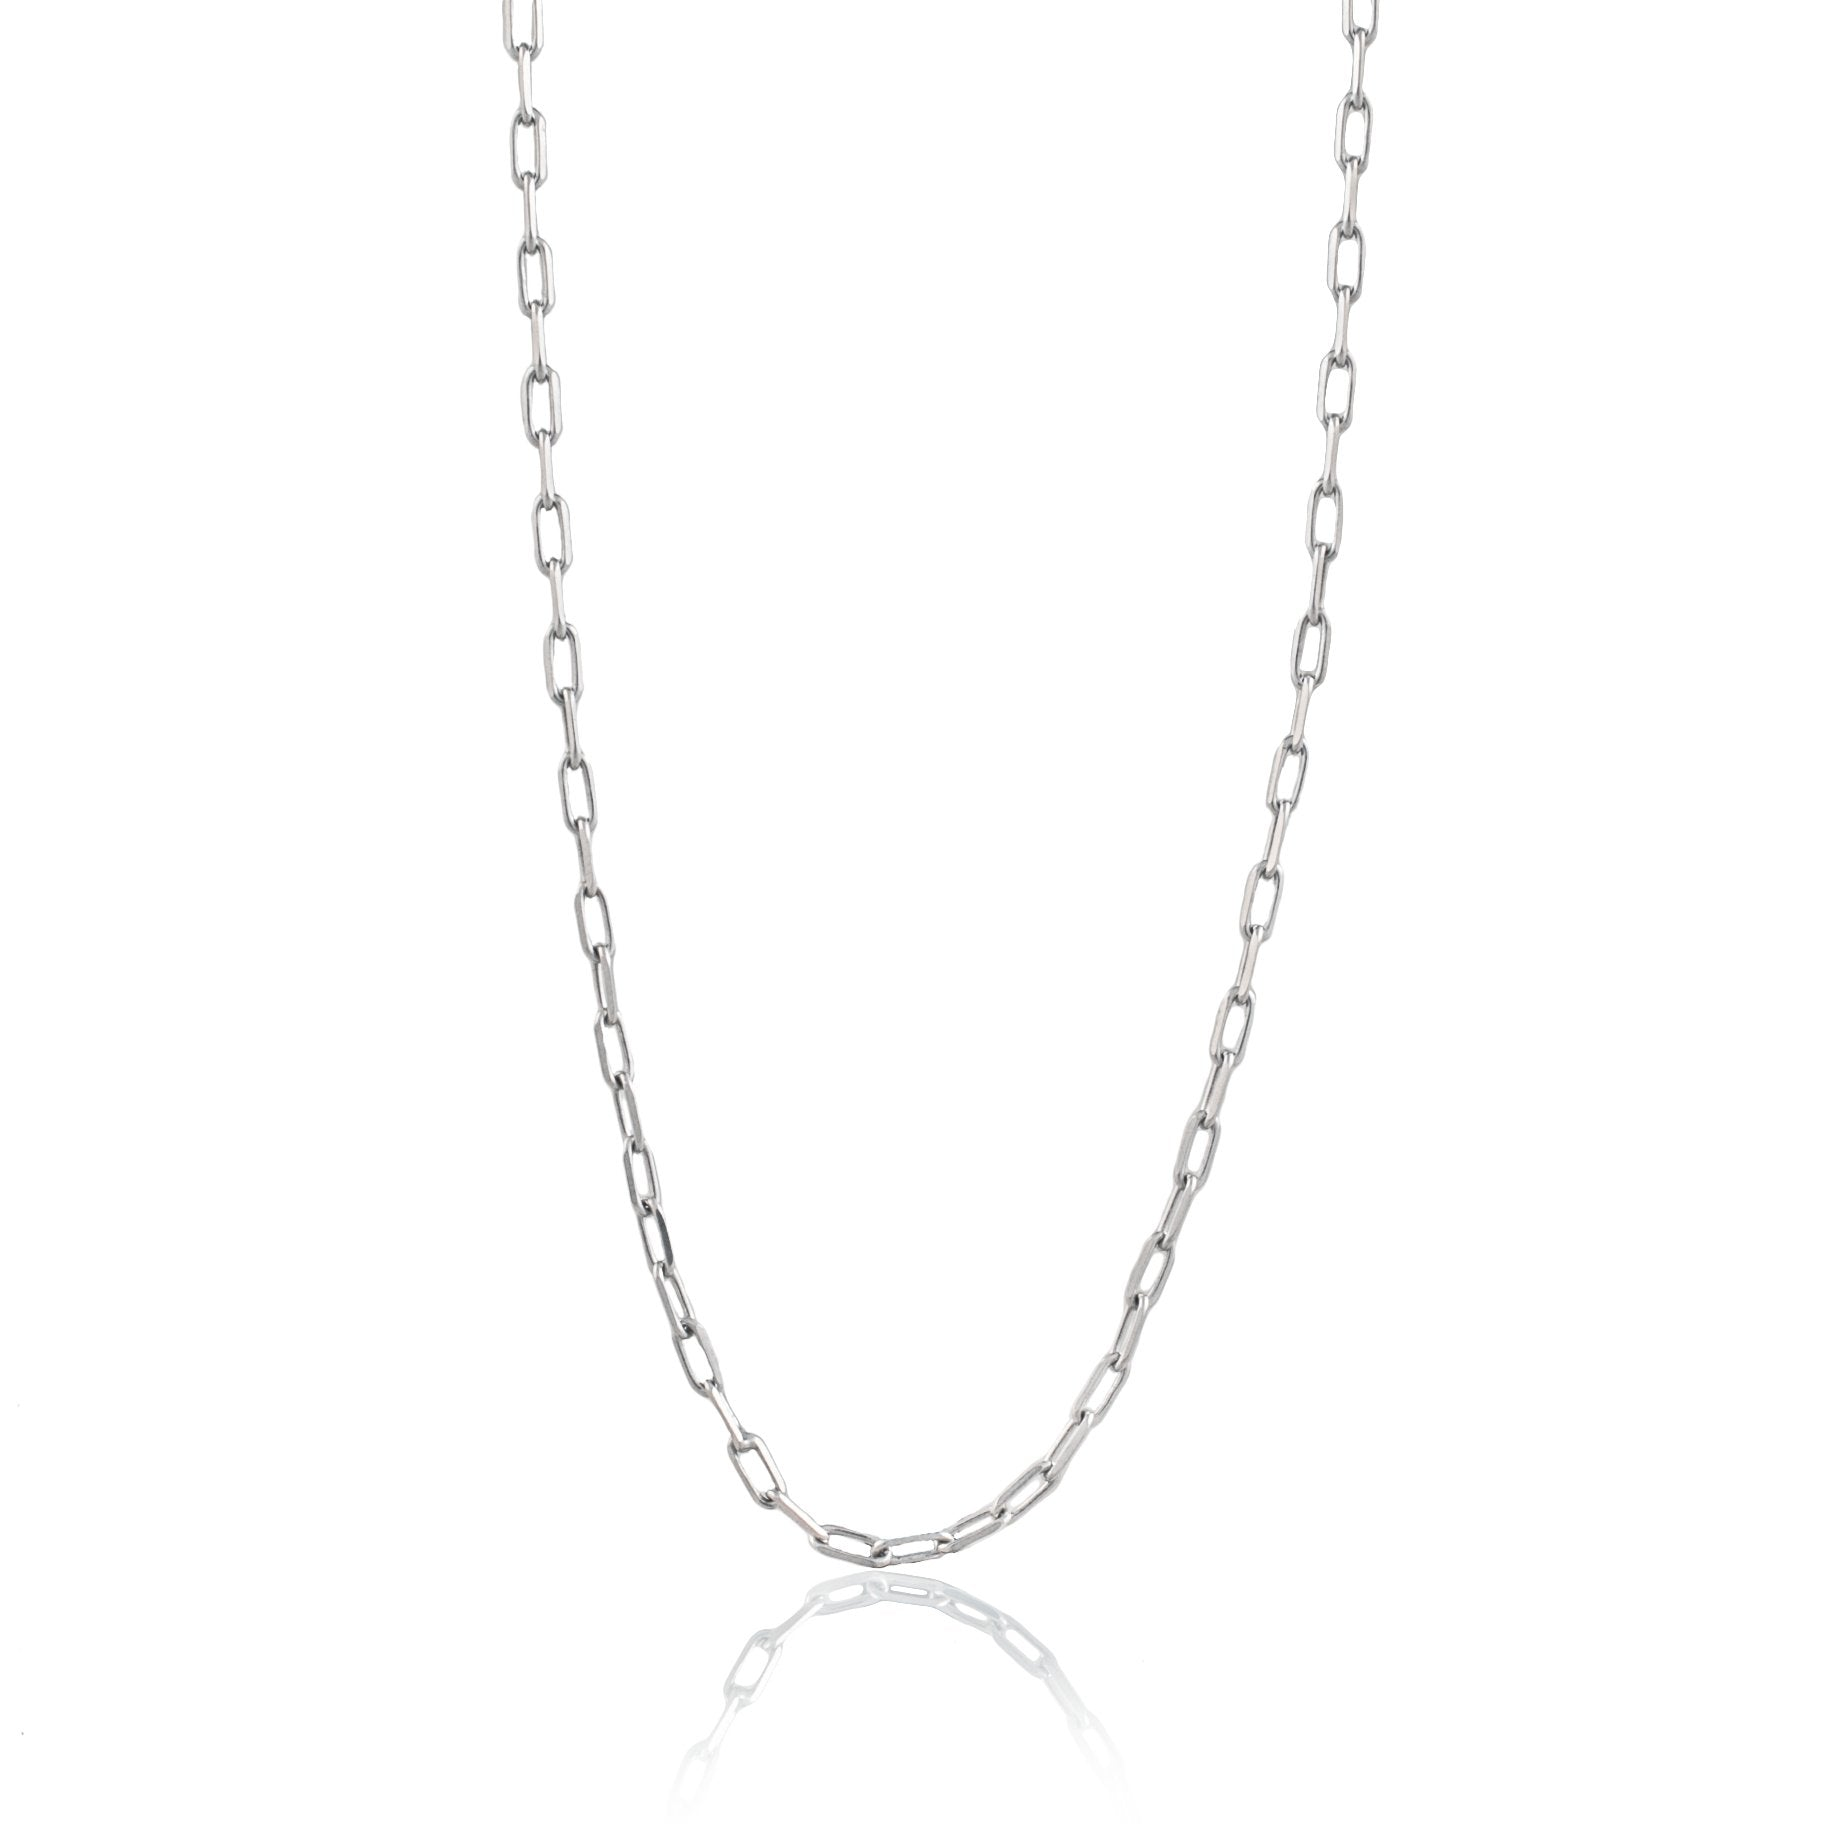 Luna & Rose Long Beach Link Chain - Silver